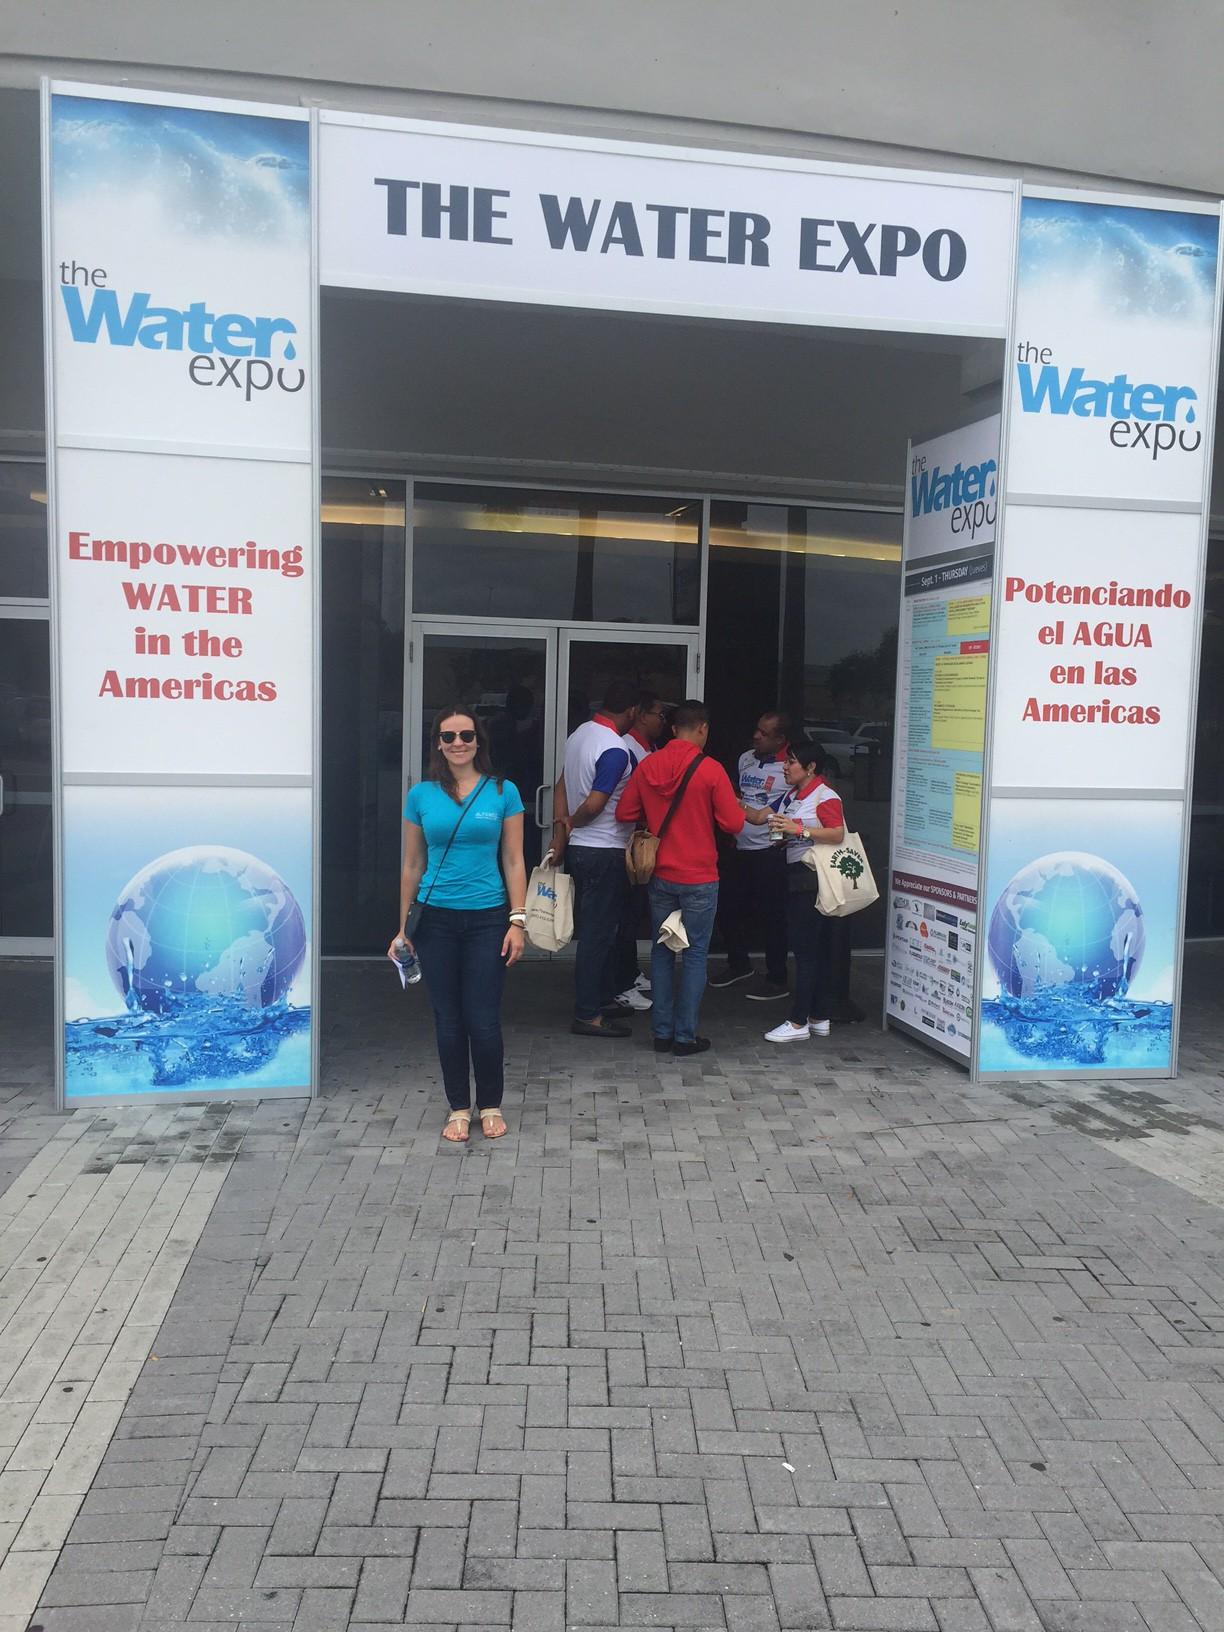 The Water Expo 2